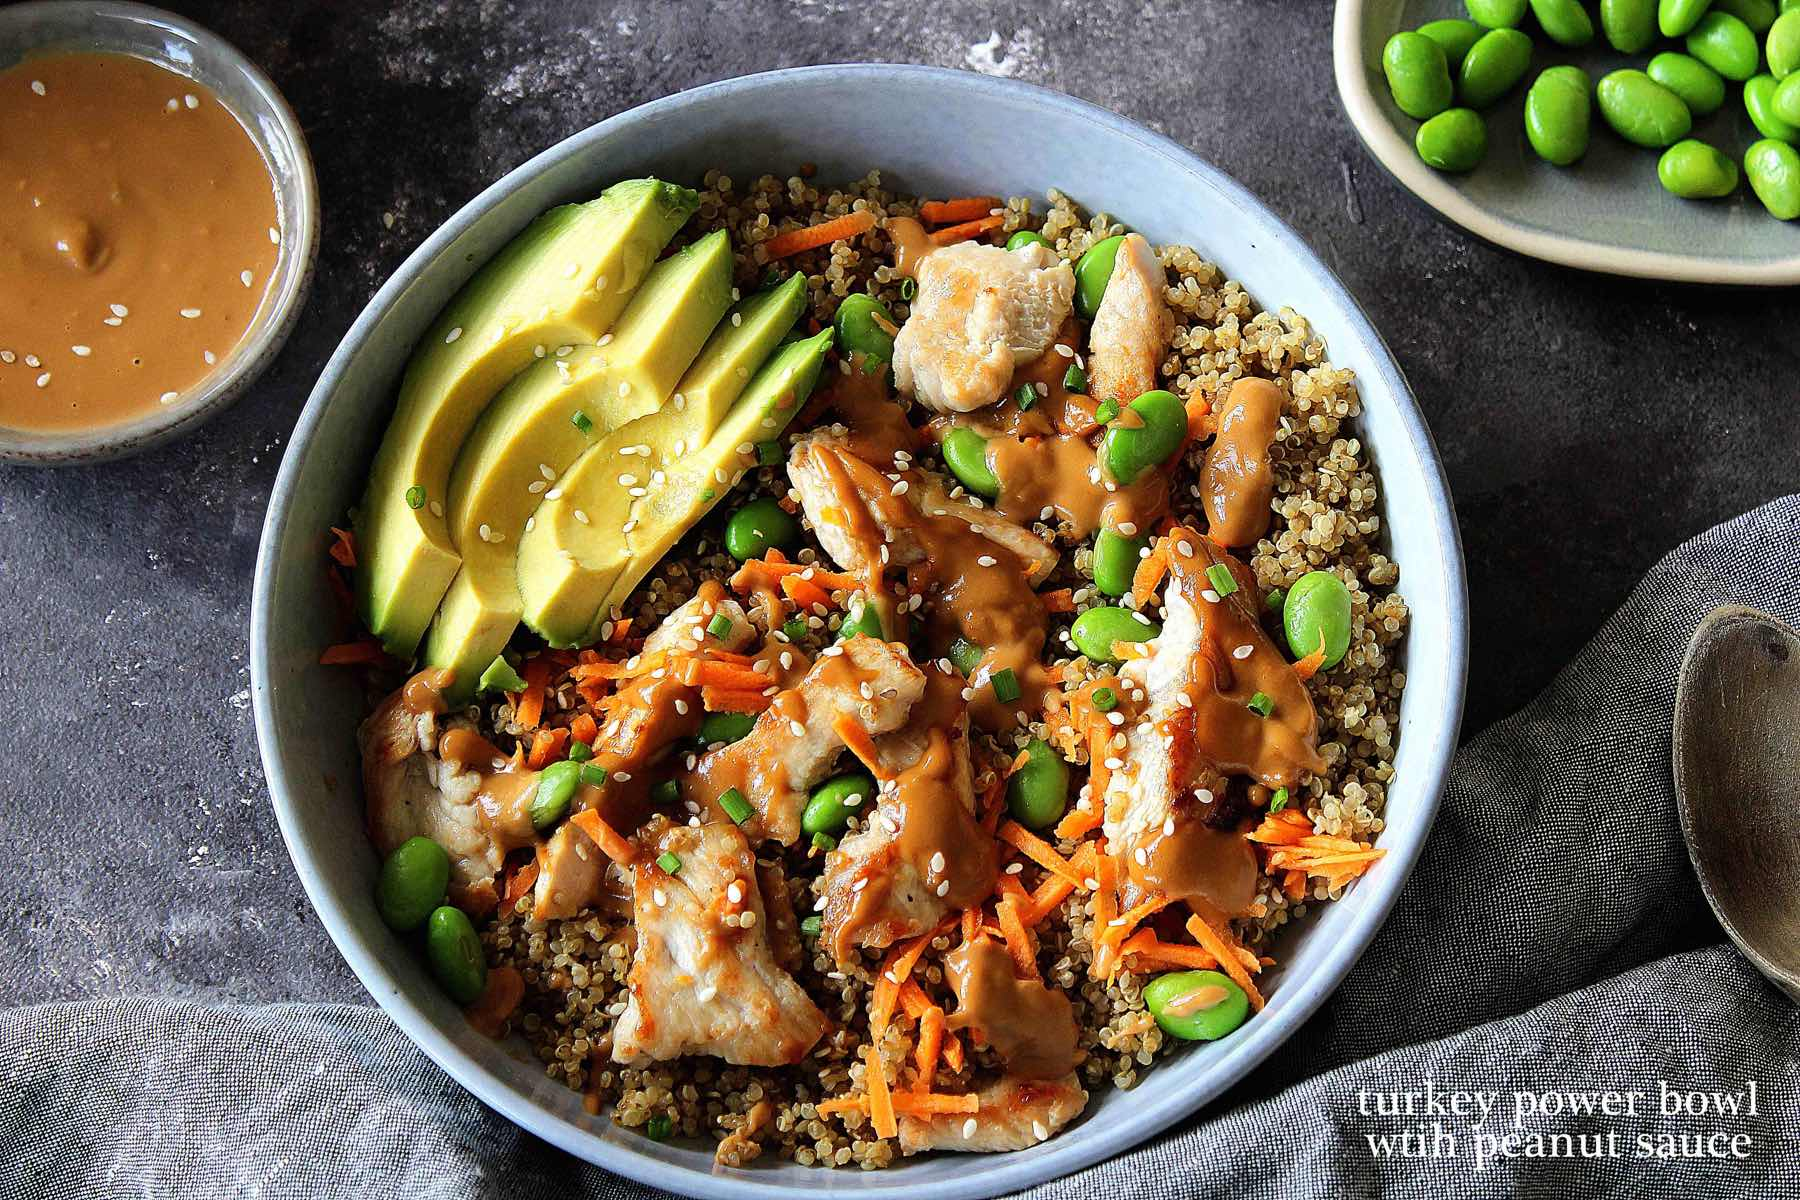 Turkey power bowl with peanut sauce